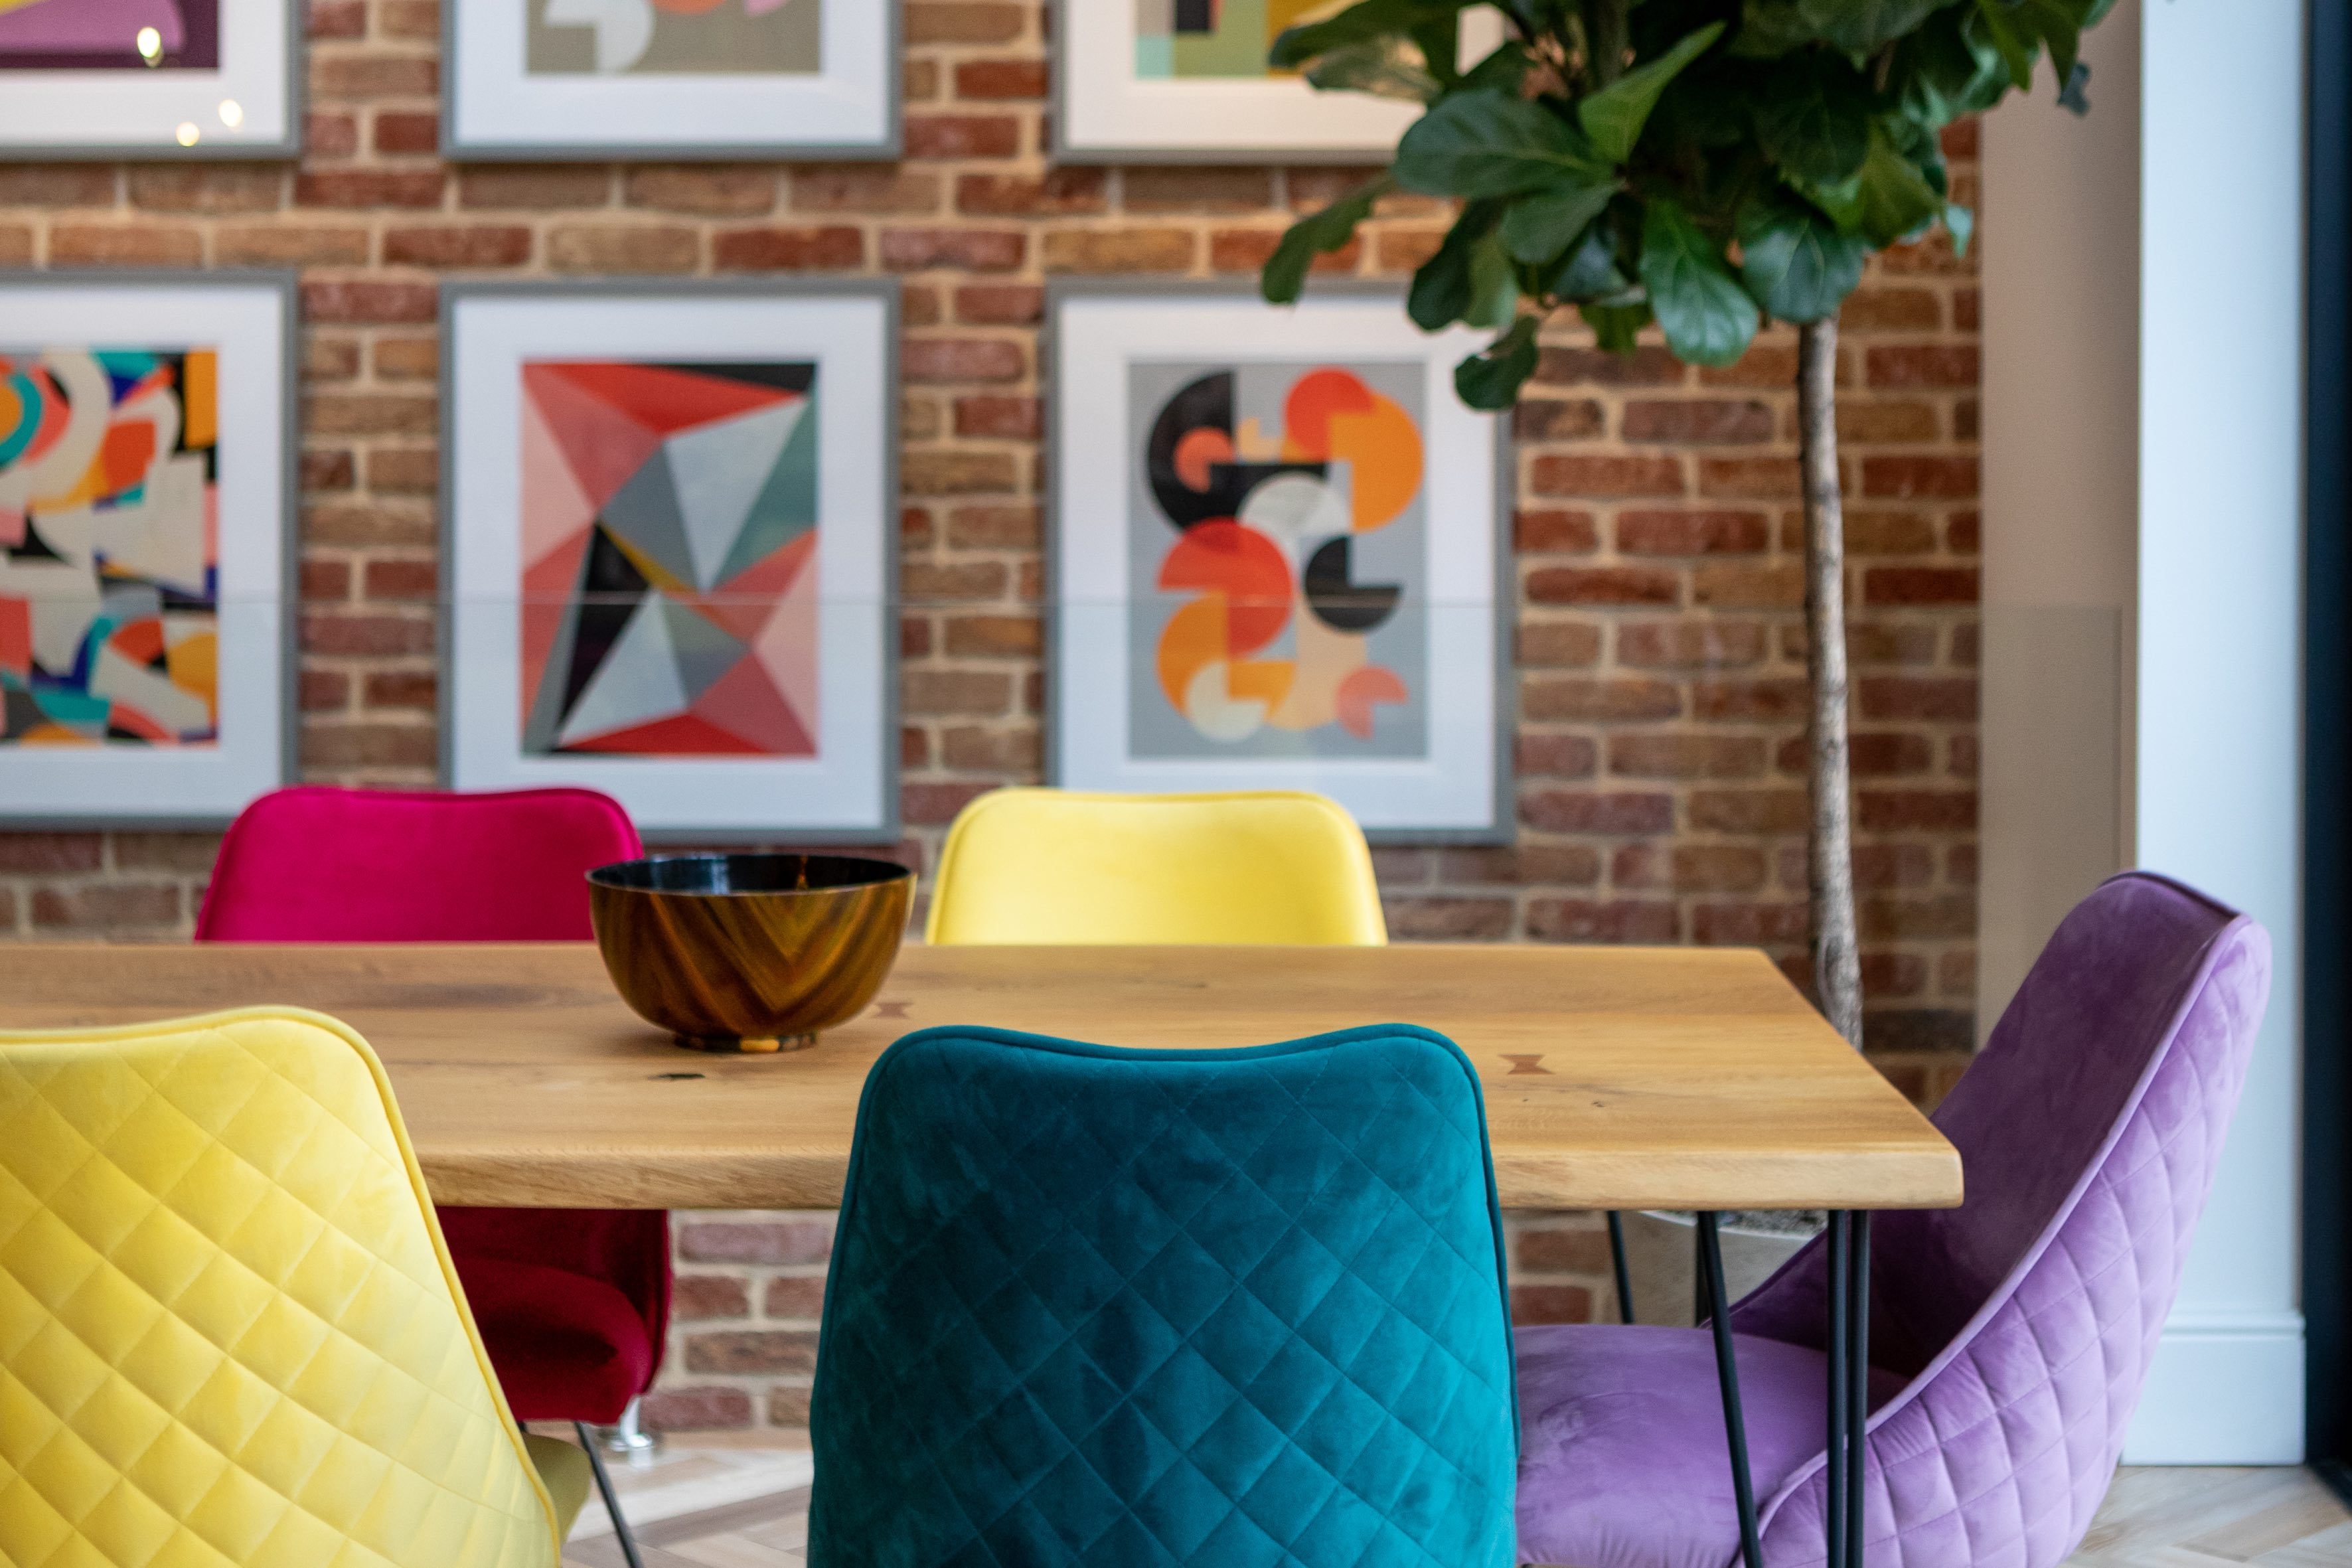 Luxury dining area with brightly coloured chairs and big plant